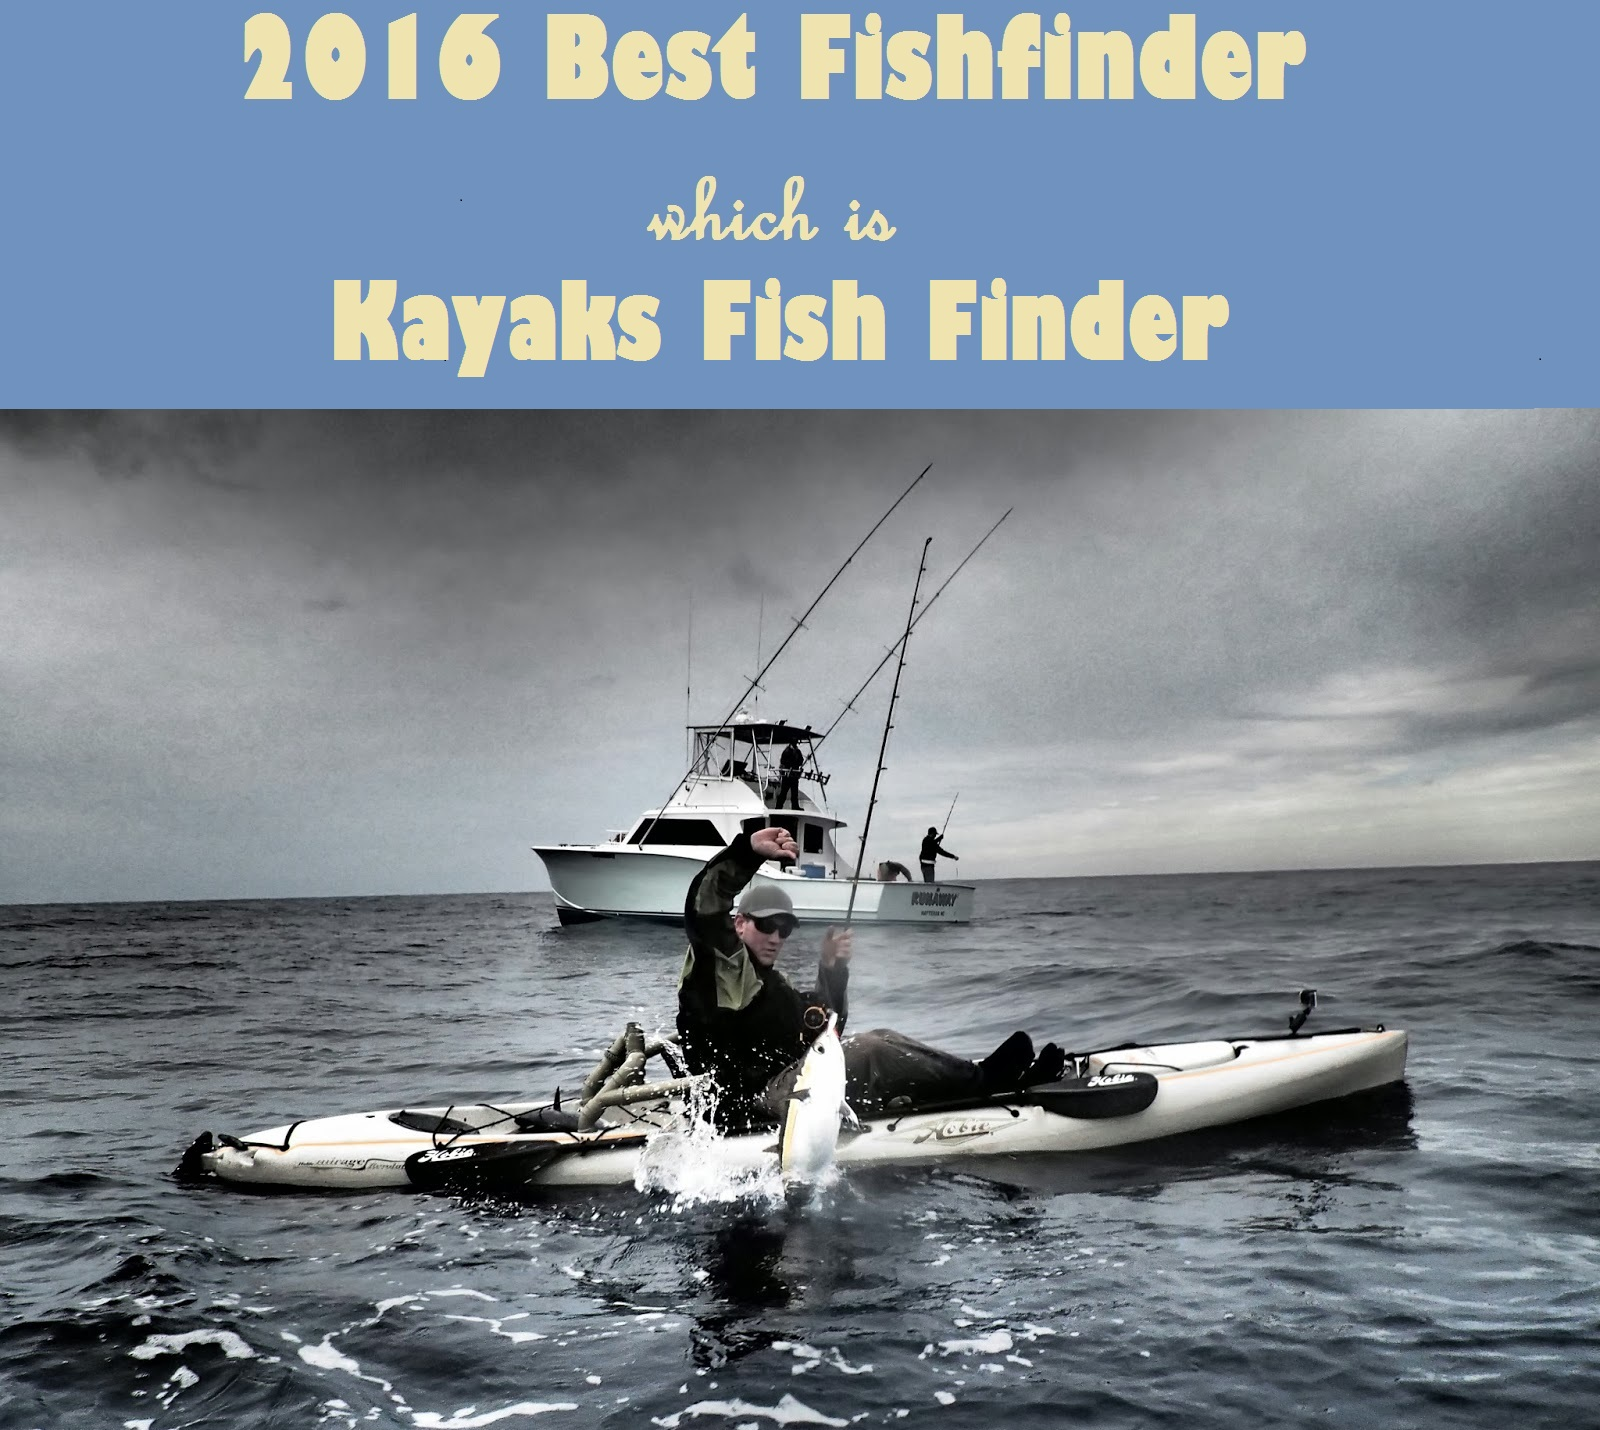 kayak fish finder reviews | best fish finder reviews 2016 and, Fish Finder